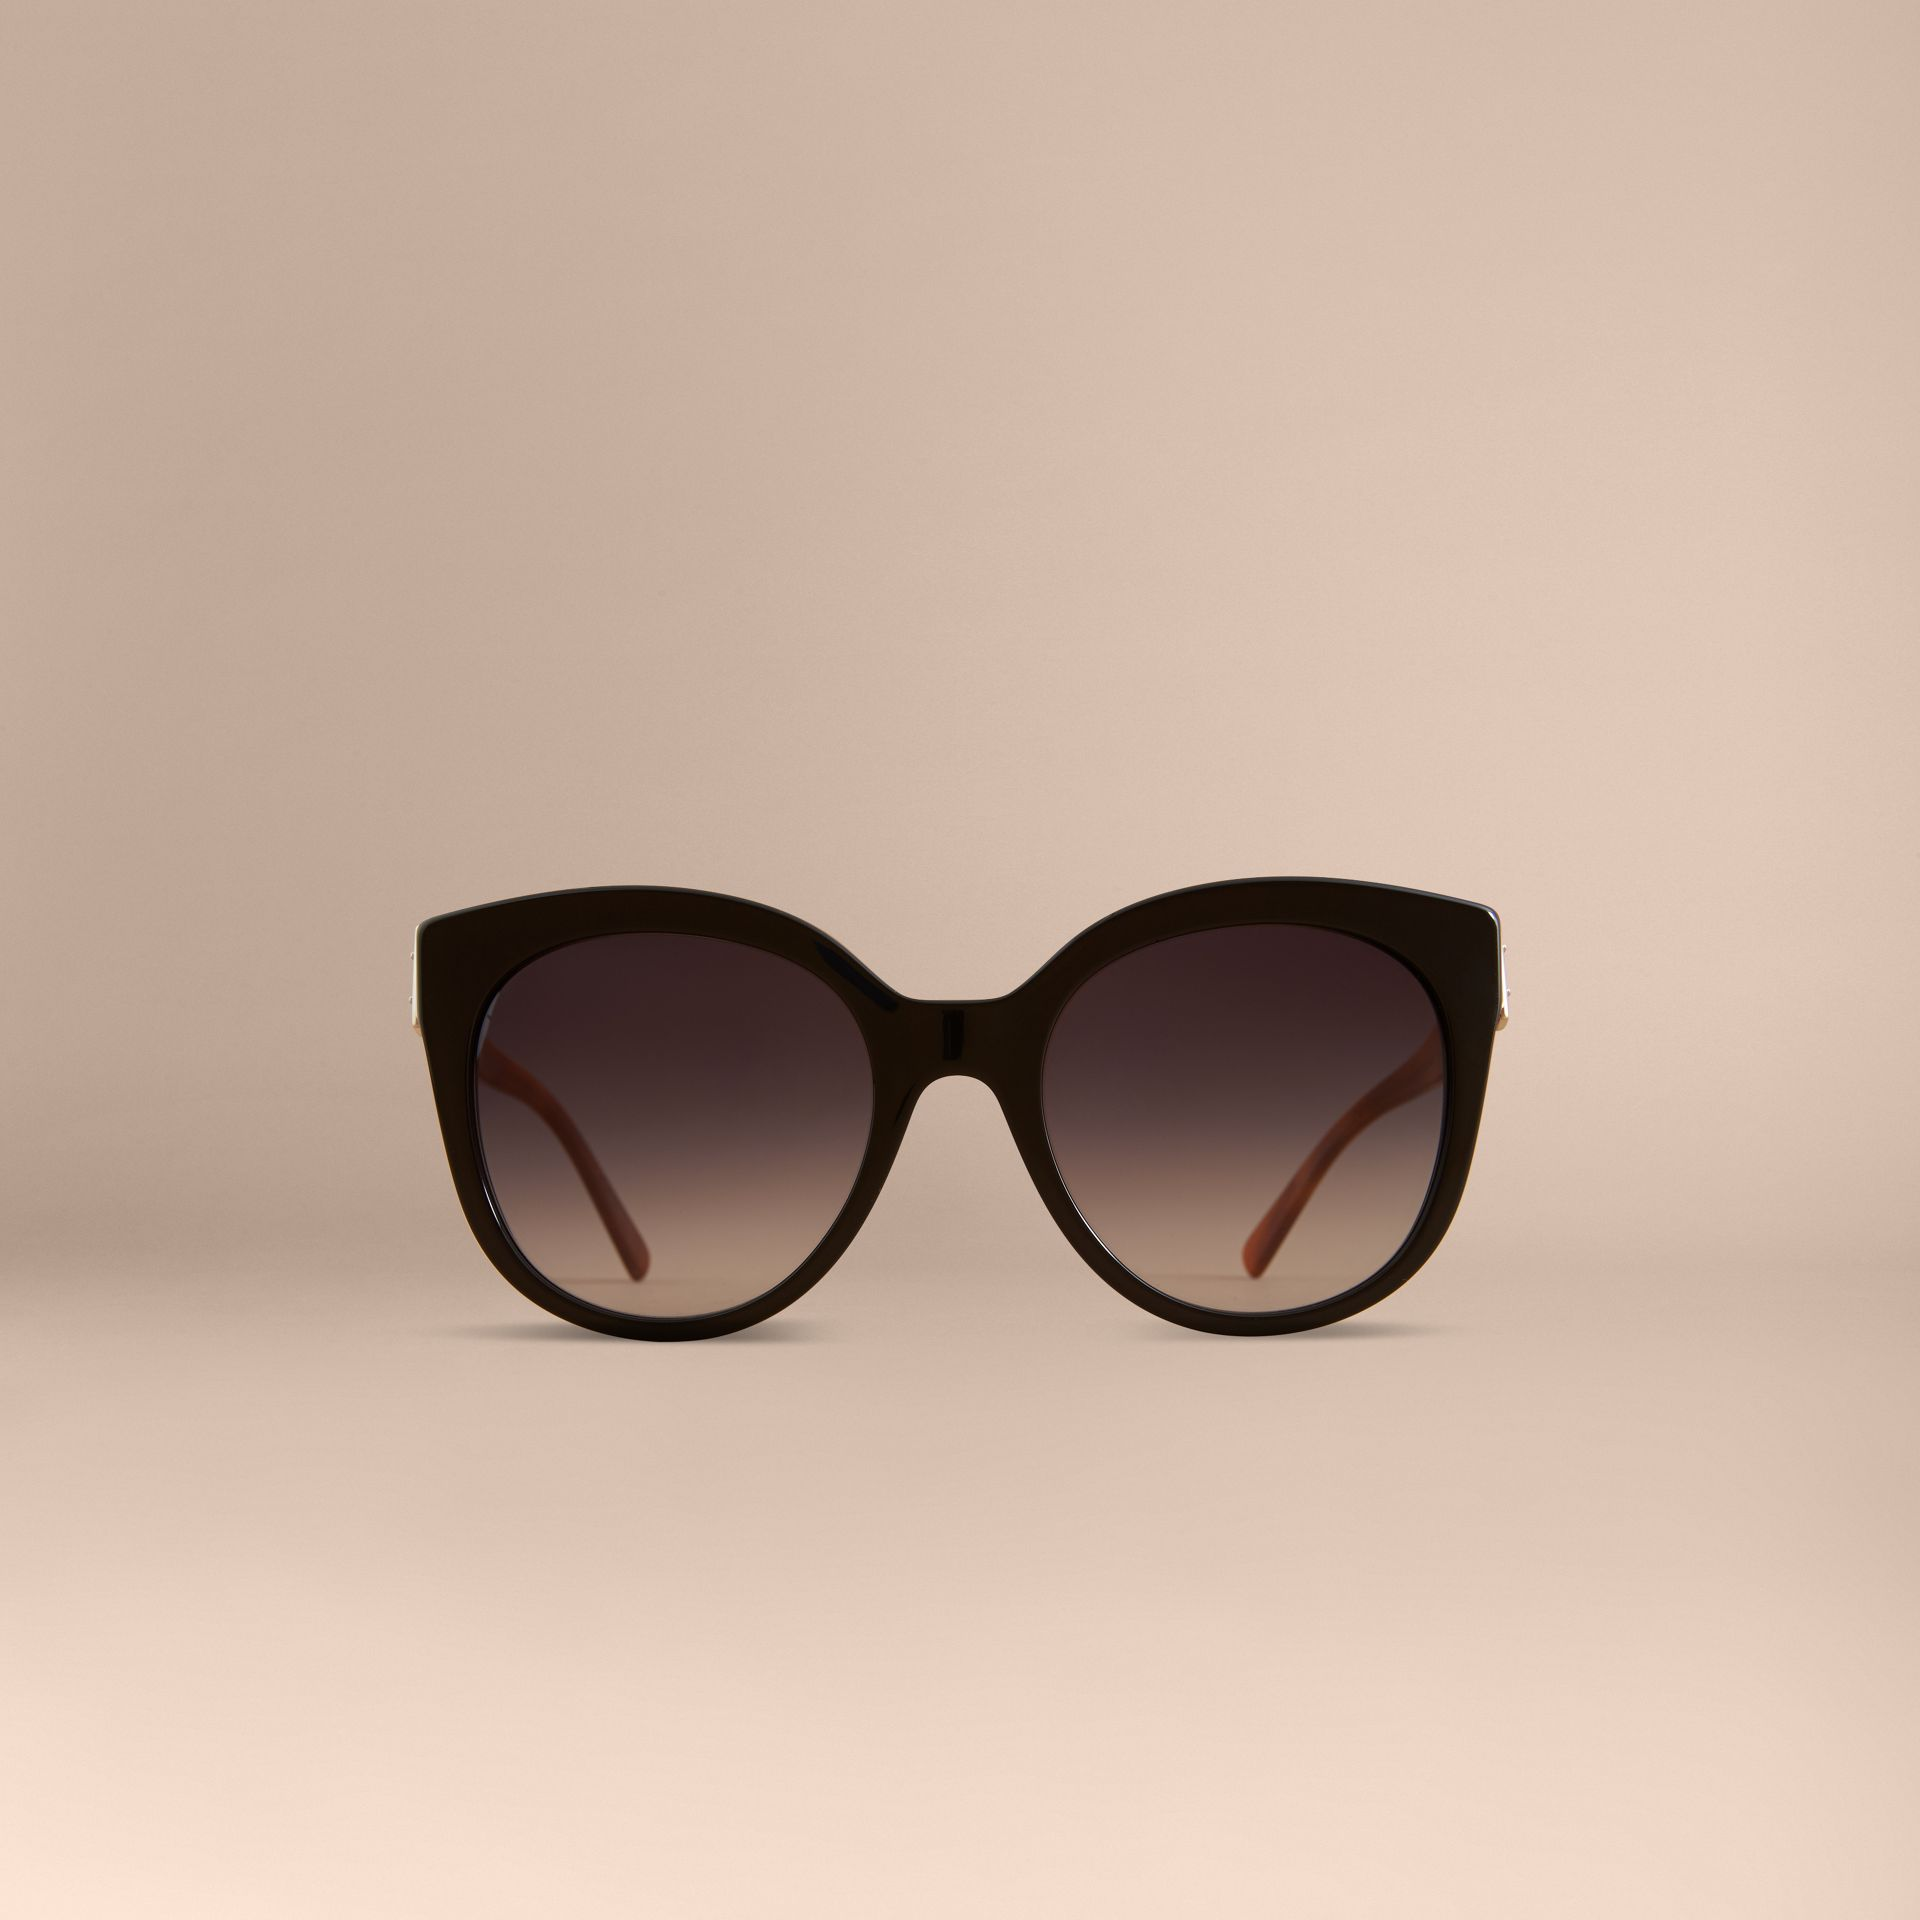 Buckle Detail Cat-eye Frame Sunglasses in Black - Women | Burberry United States - gallery image 3